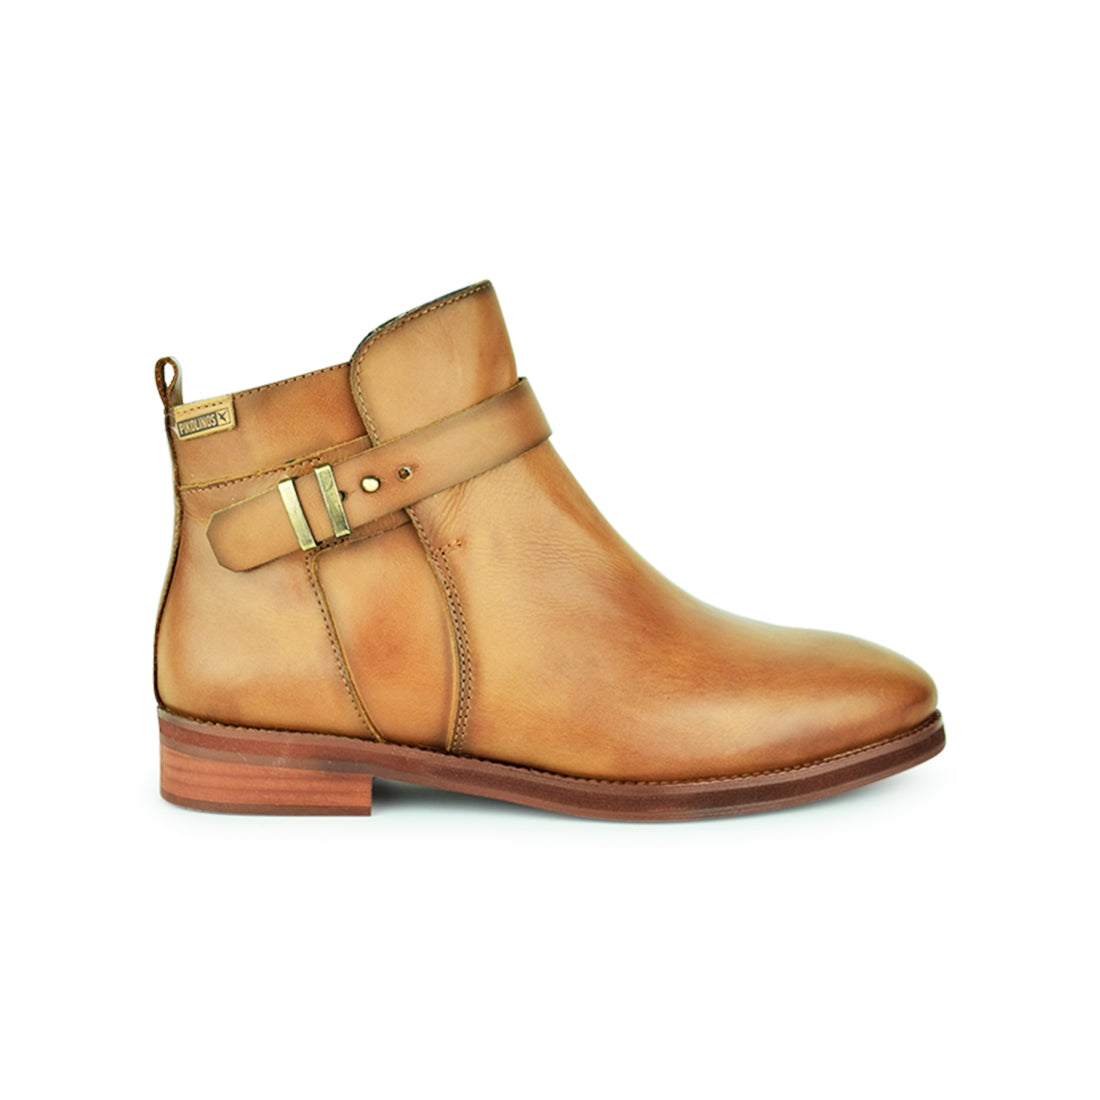 RANDY - Pikolinos Ankle Boots Tan Rub